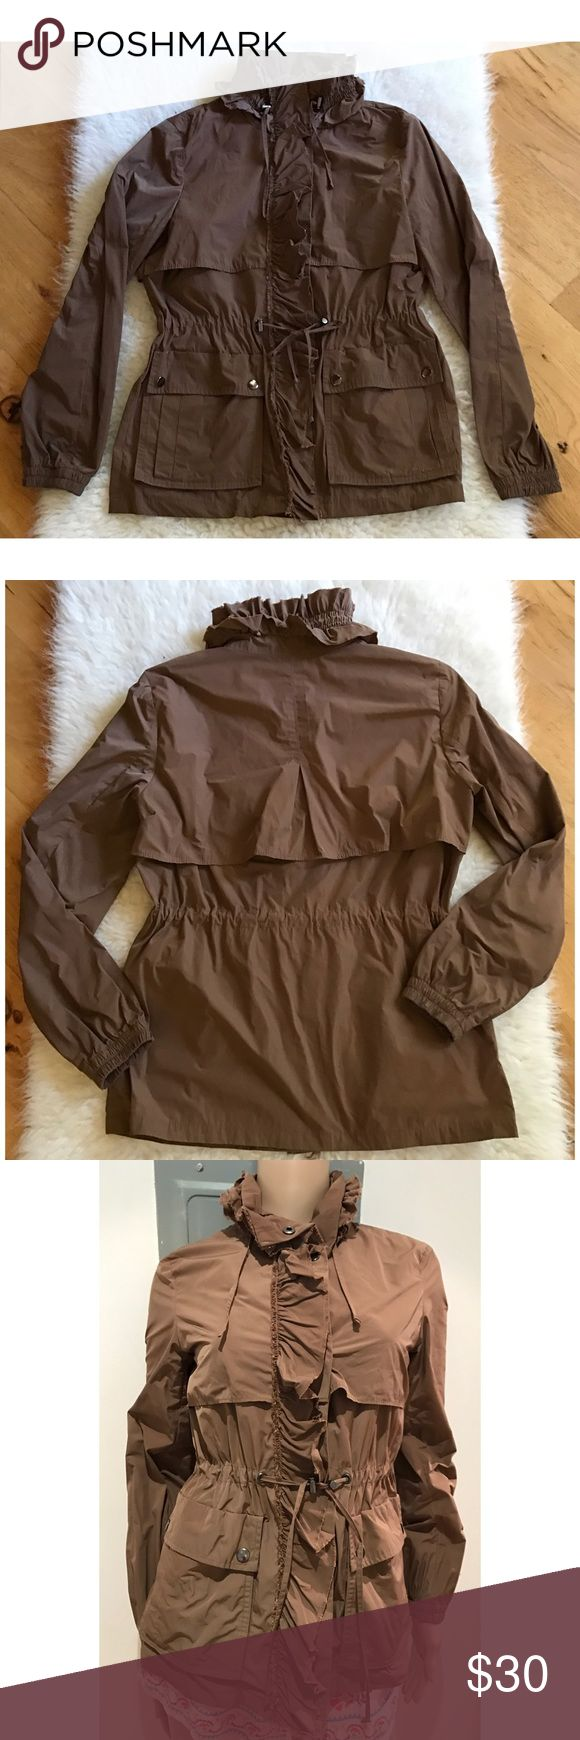 "EUC Banana Republic Ruffles Utility Parker Jacket Gorgeous dark brown Utility Parker jacket from Banana Republic in size x-small. Features adjustable high neck collar with Ruffles details, adjustable waist, pockets in front. No flaws. 100% polyester. Almost nylon sheen material to it. Much prettier in person. Color are truer to the first three pics above. Snap button closure. Measure about 25"" length, 18"" bust, 14"" shoulder to shoulder, 23"" sleeves. ❌No trades or modeling. Open to reasonable…"